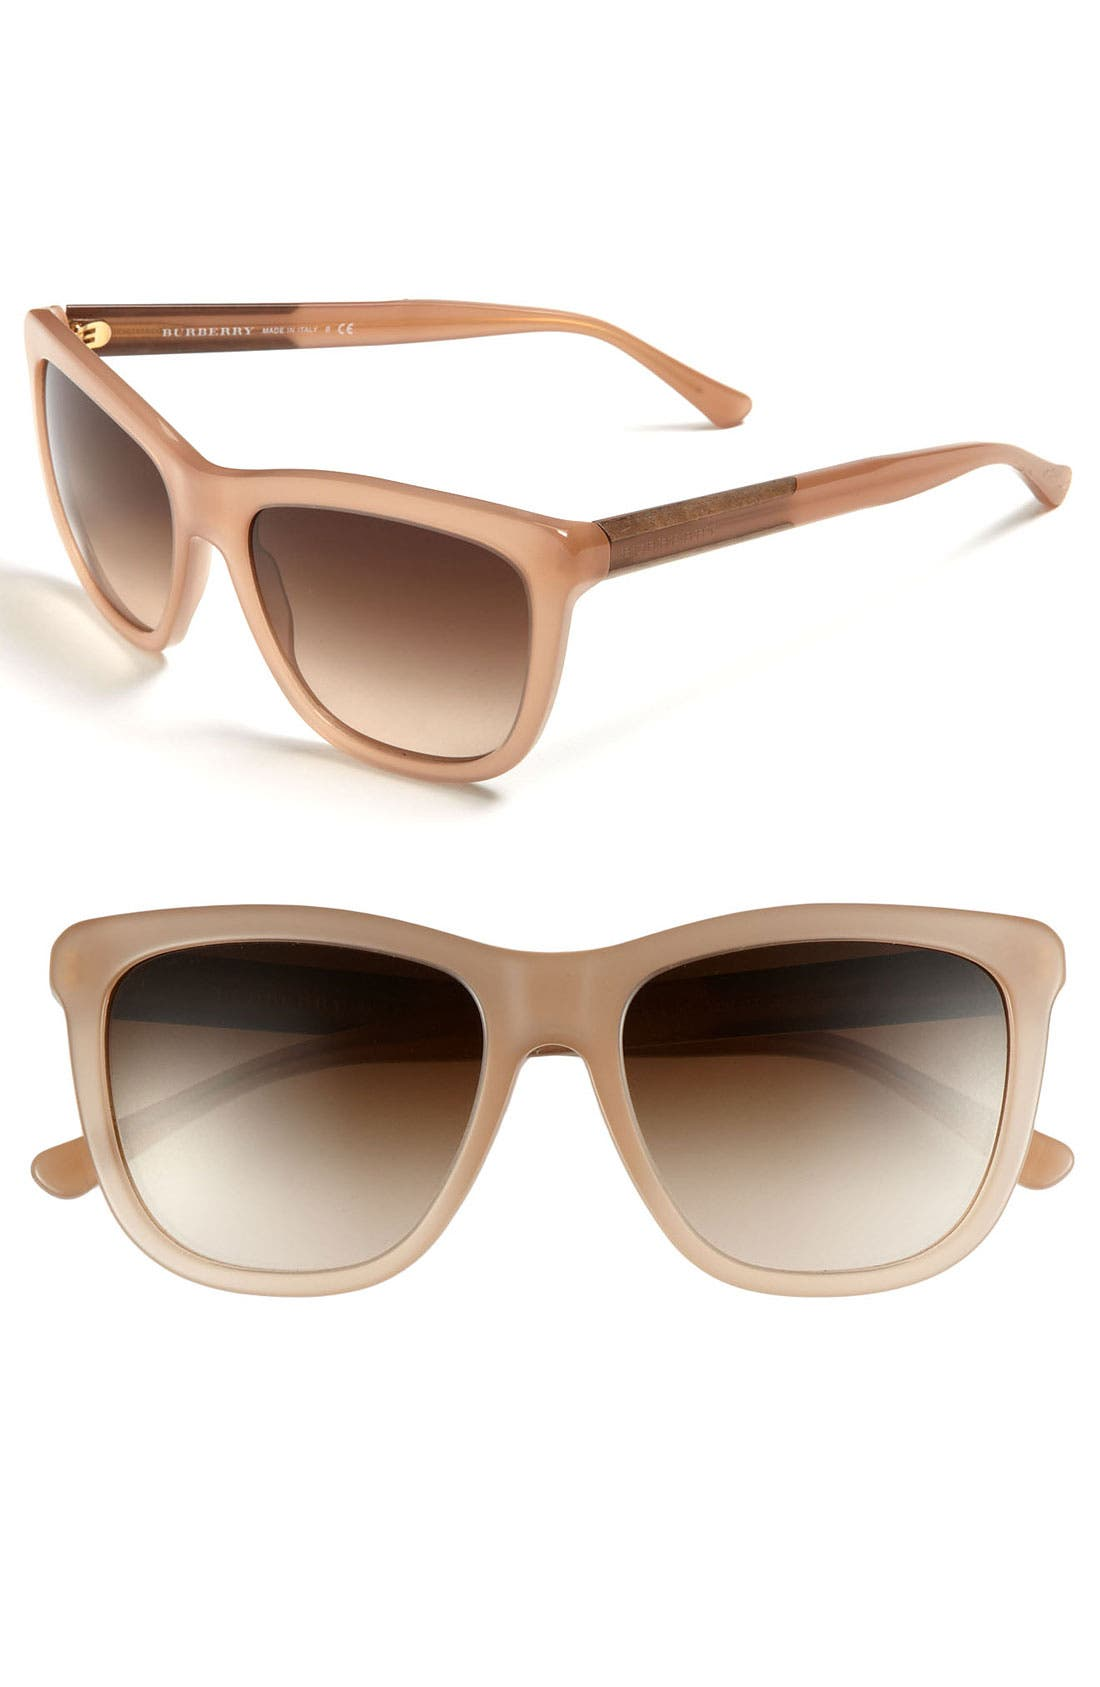 Main Image - Burberry 55mm Cat Eye Sunglasses